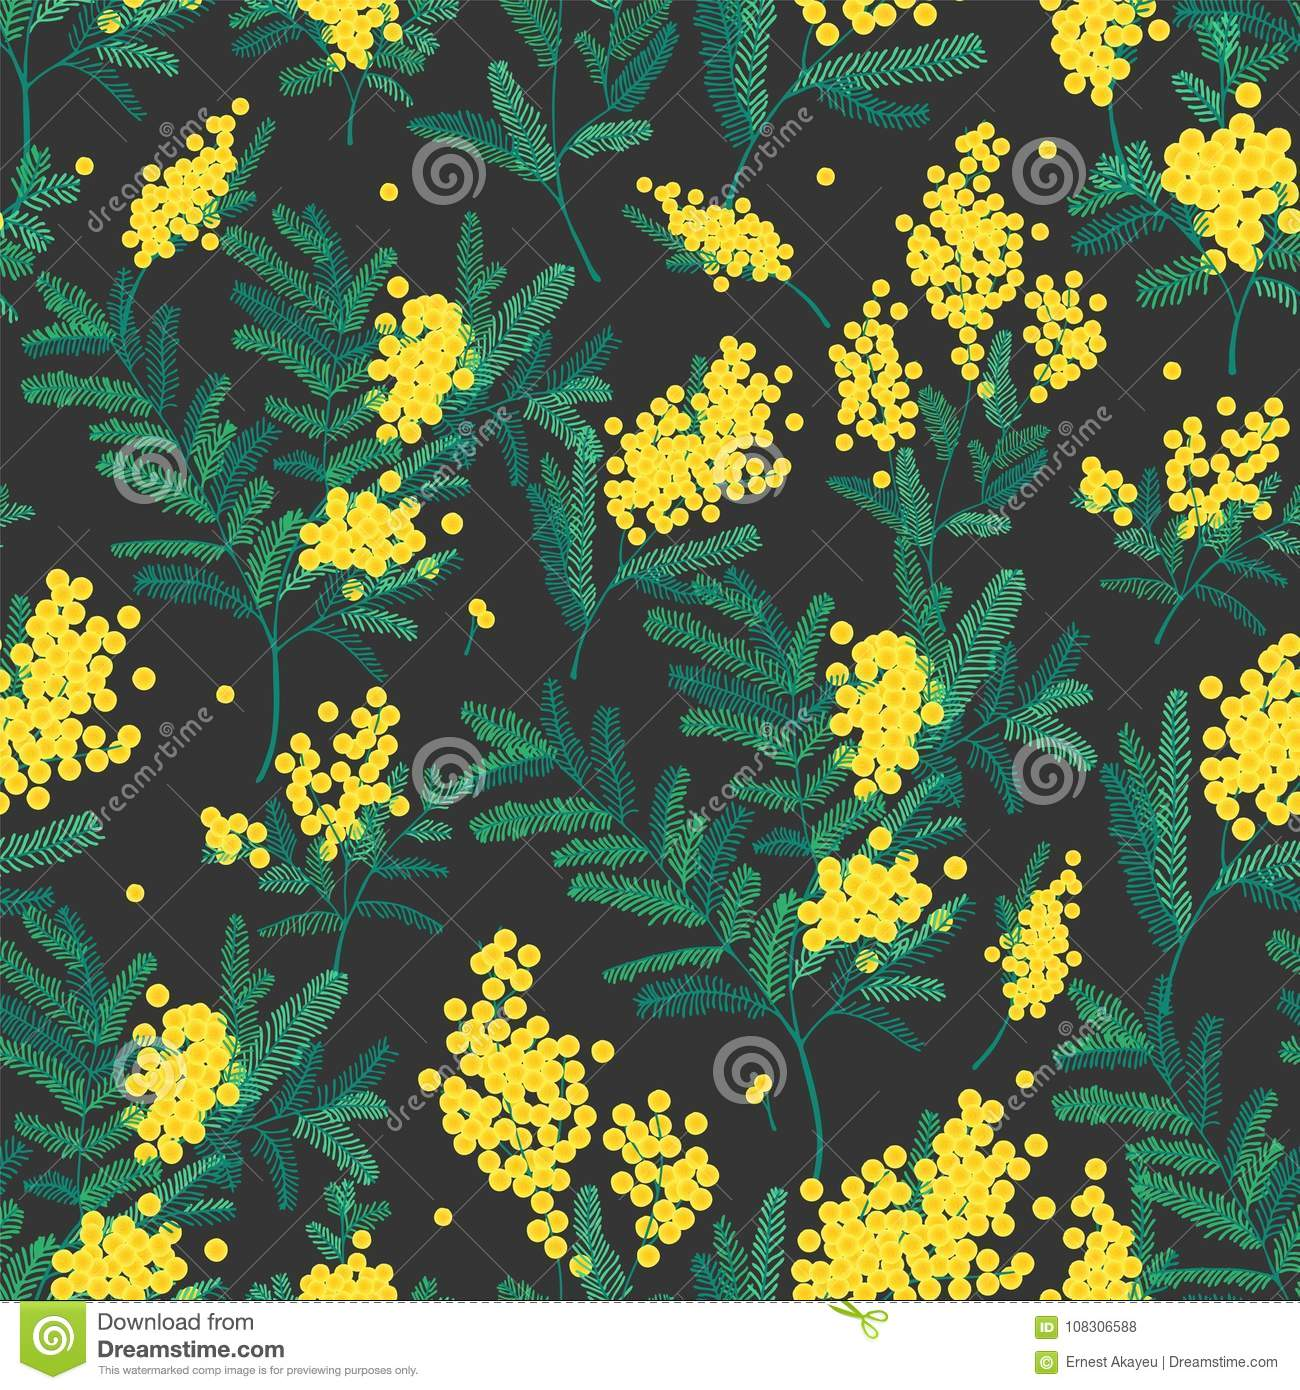 Natural Seamless Pattern With Gorgeous Blooming Mimosa Flowers On